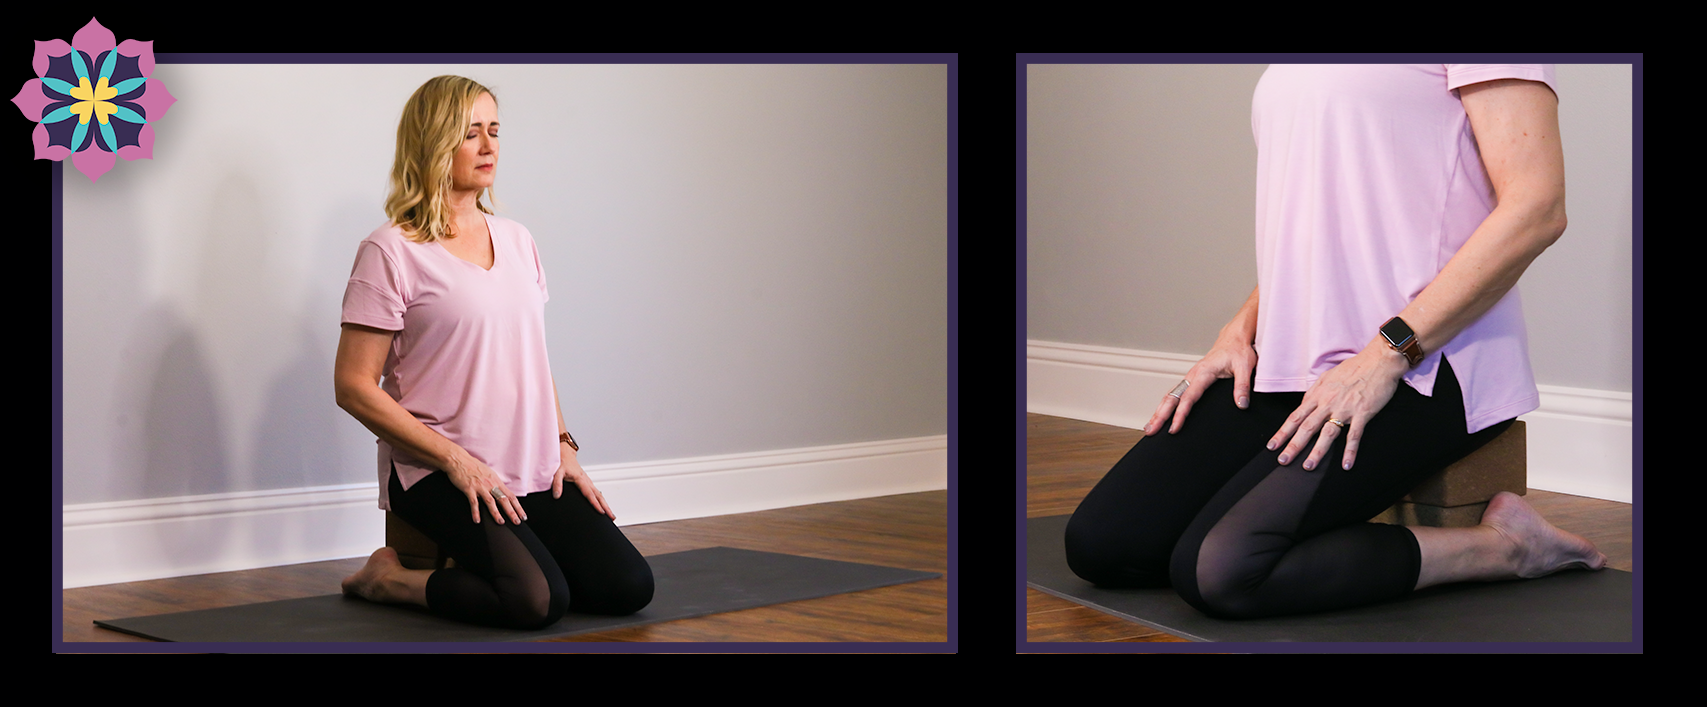 Stacy DiGregorio sitting on a bolster to meditate— Tampa Bay, FL.